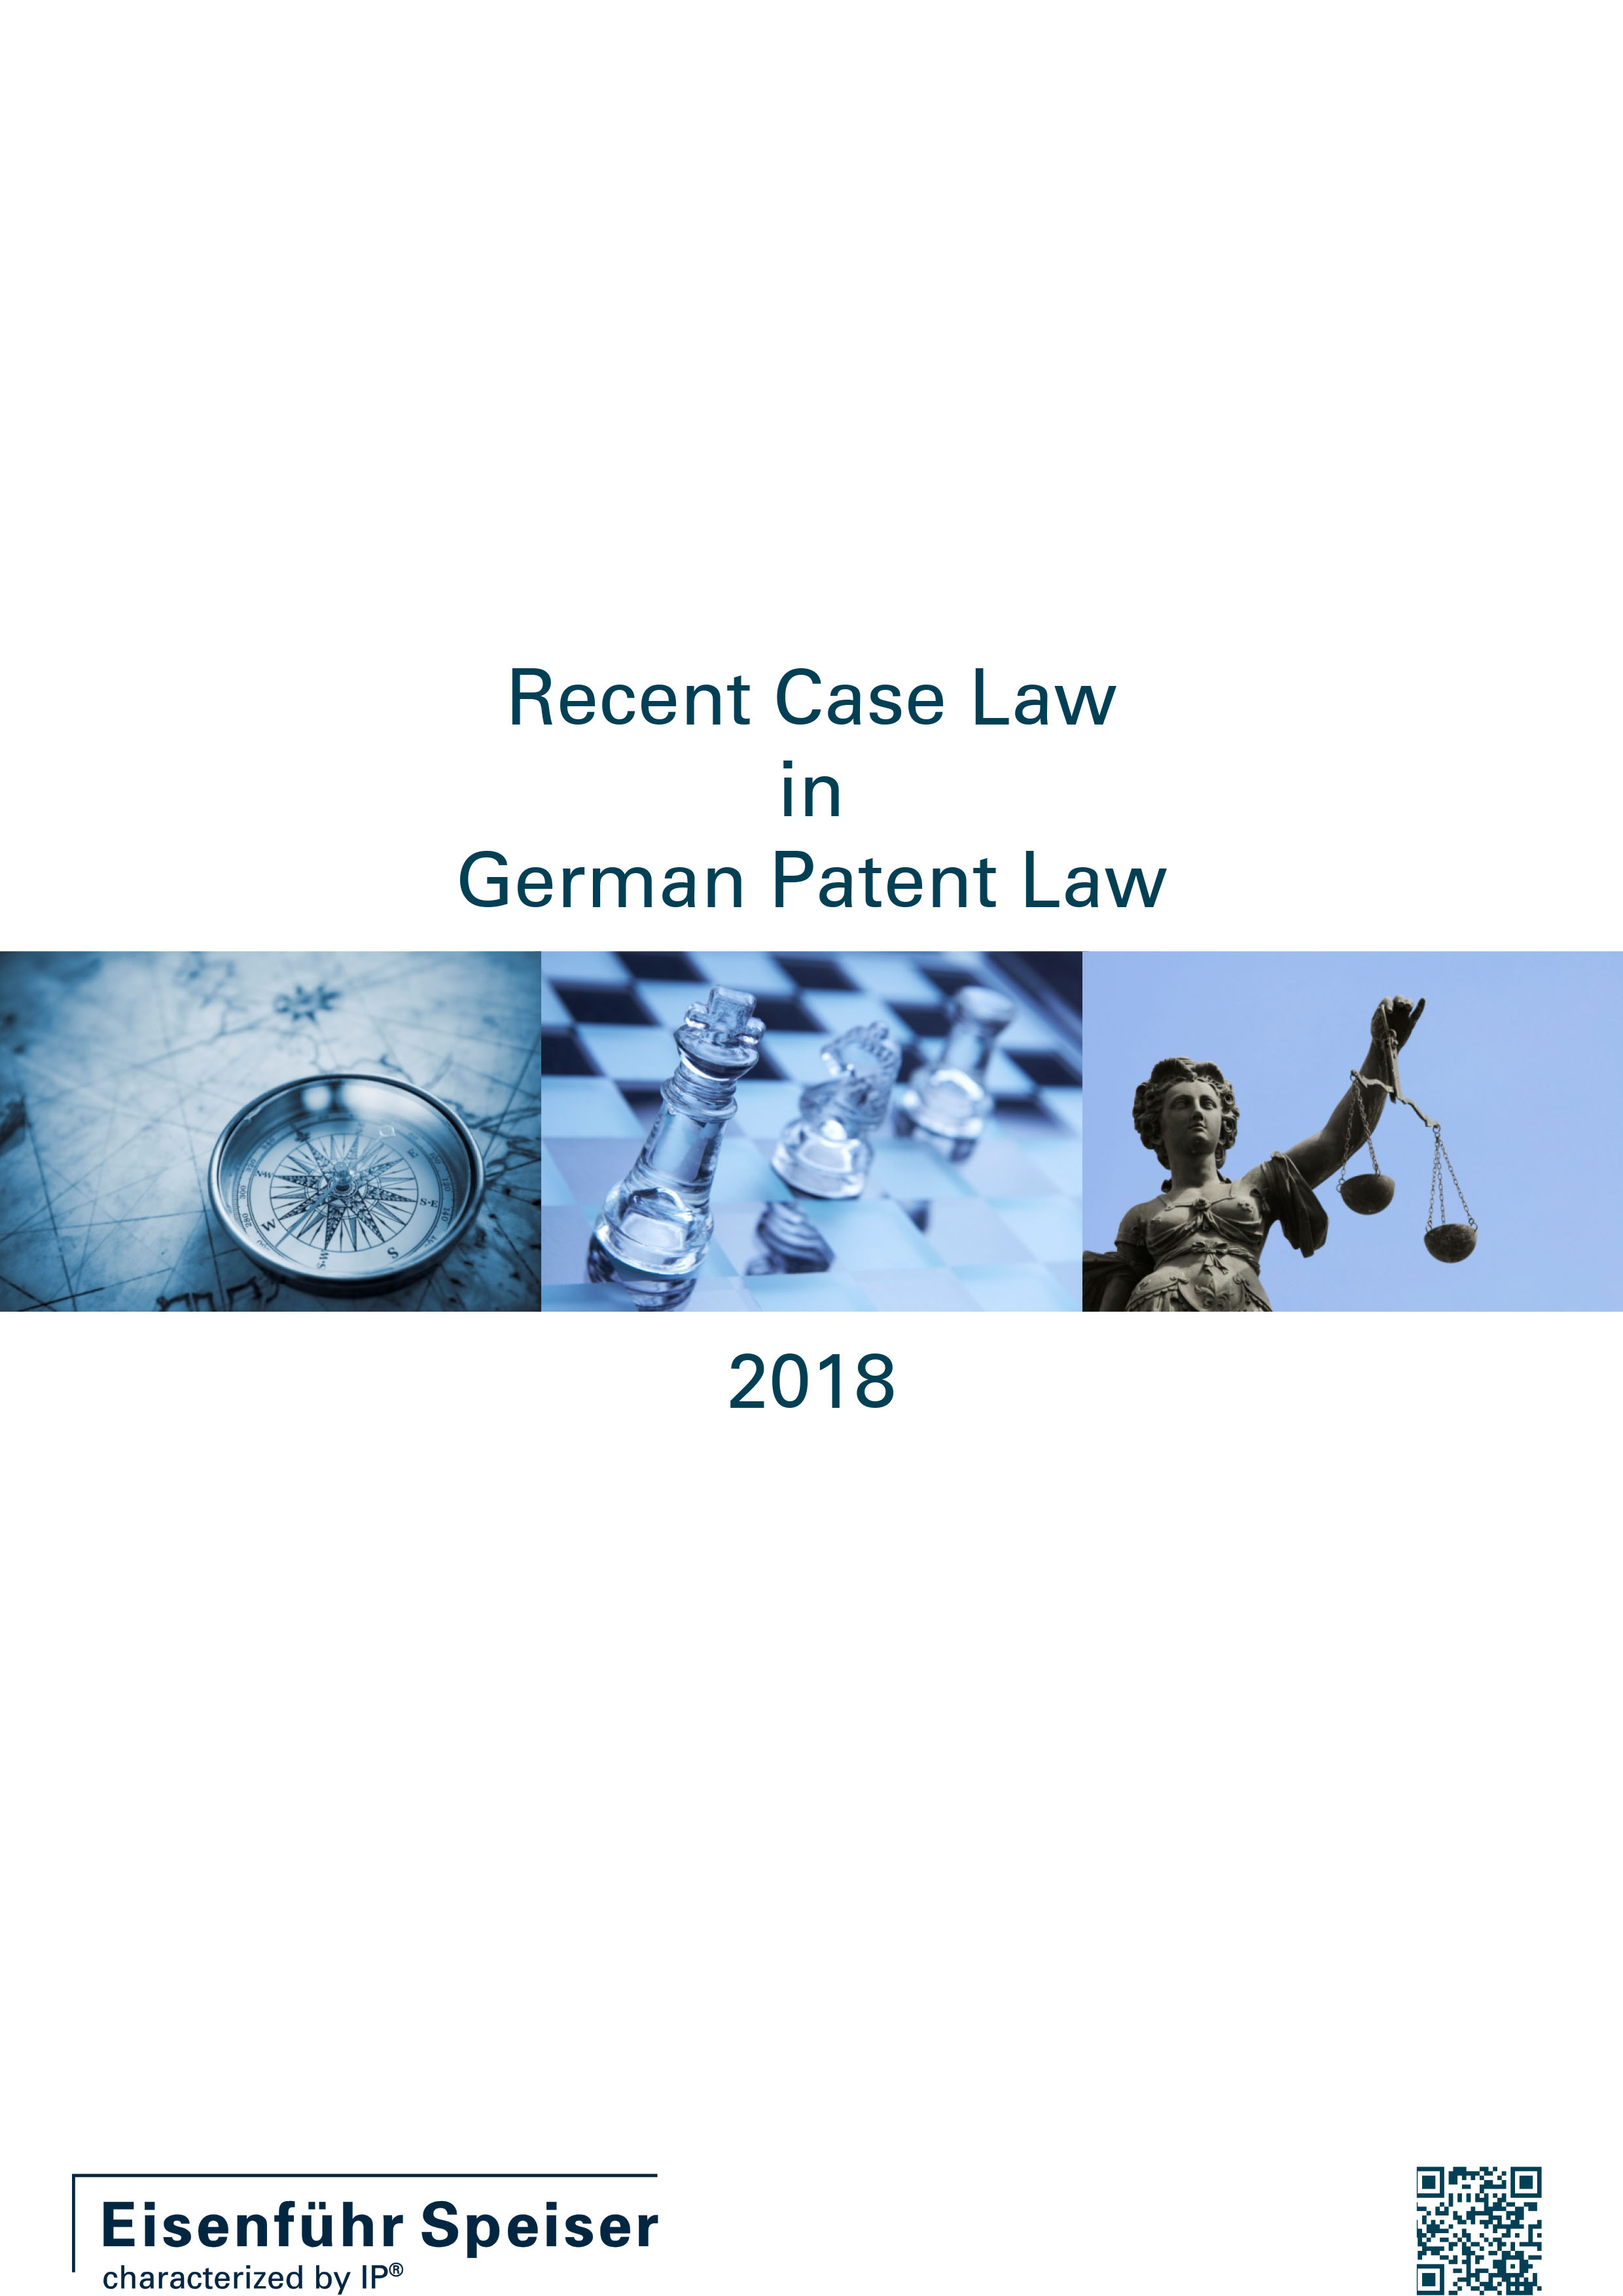 Recent Case Law in German Patent Law 2018